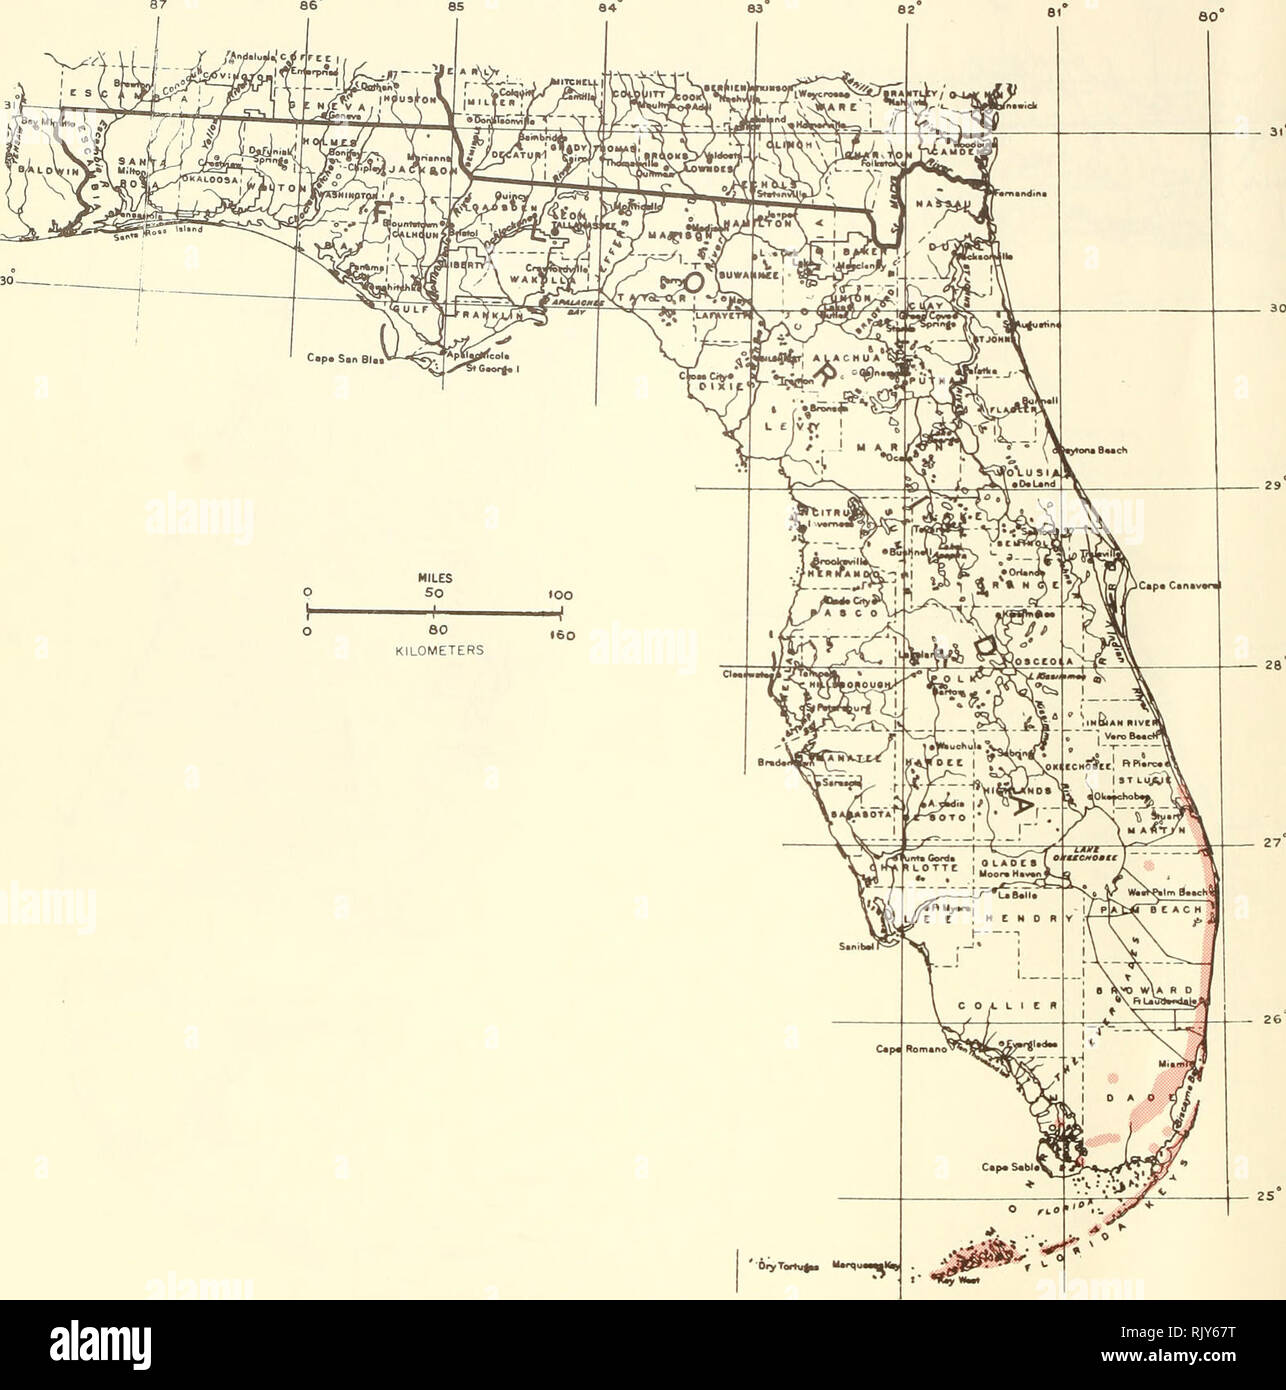 Map Of Florid Atlas of United States trees: volume 5. Florida. Trees. Map 225